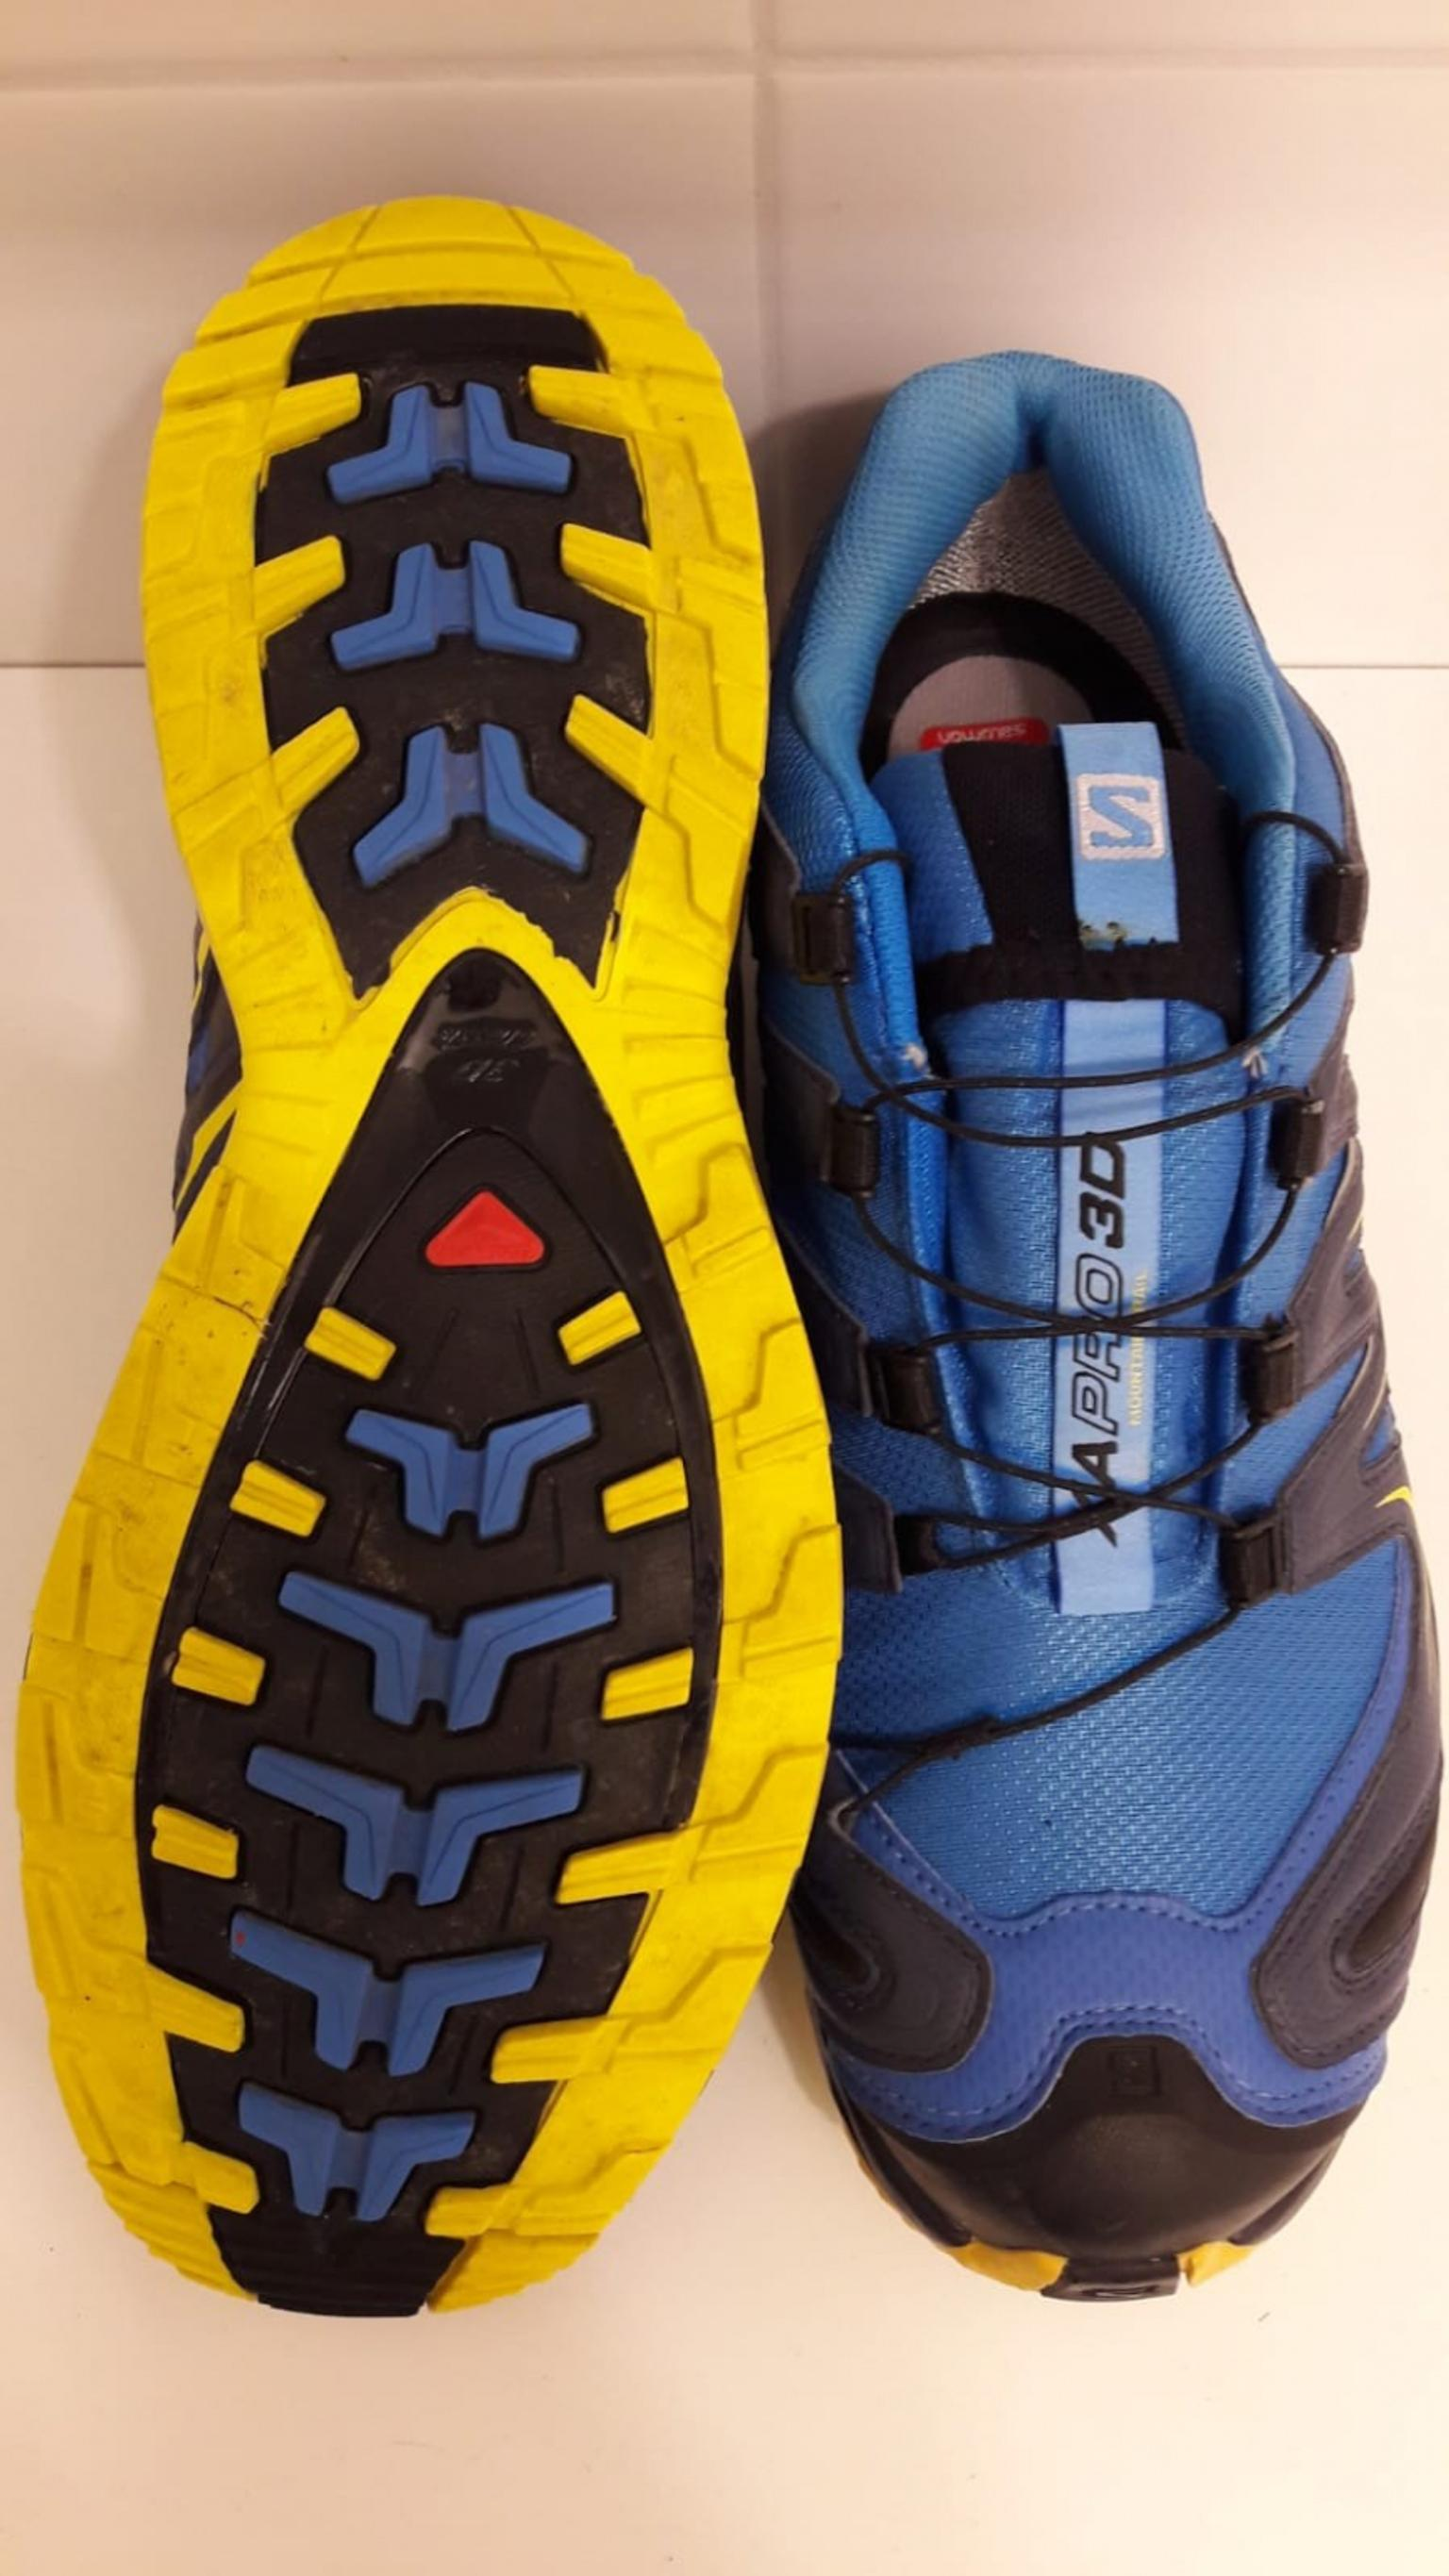 Salomon GoreTex in 5020 Salzburg for €60.00 for sale | Shpock